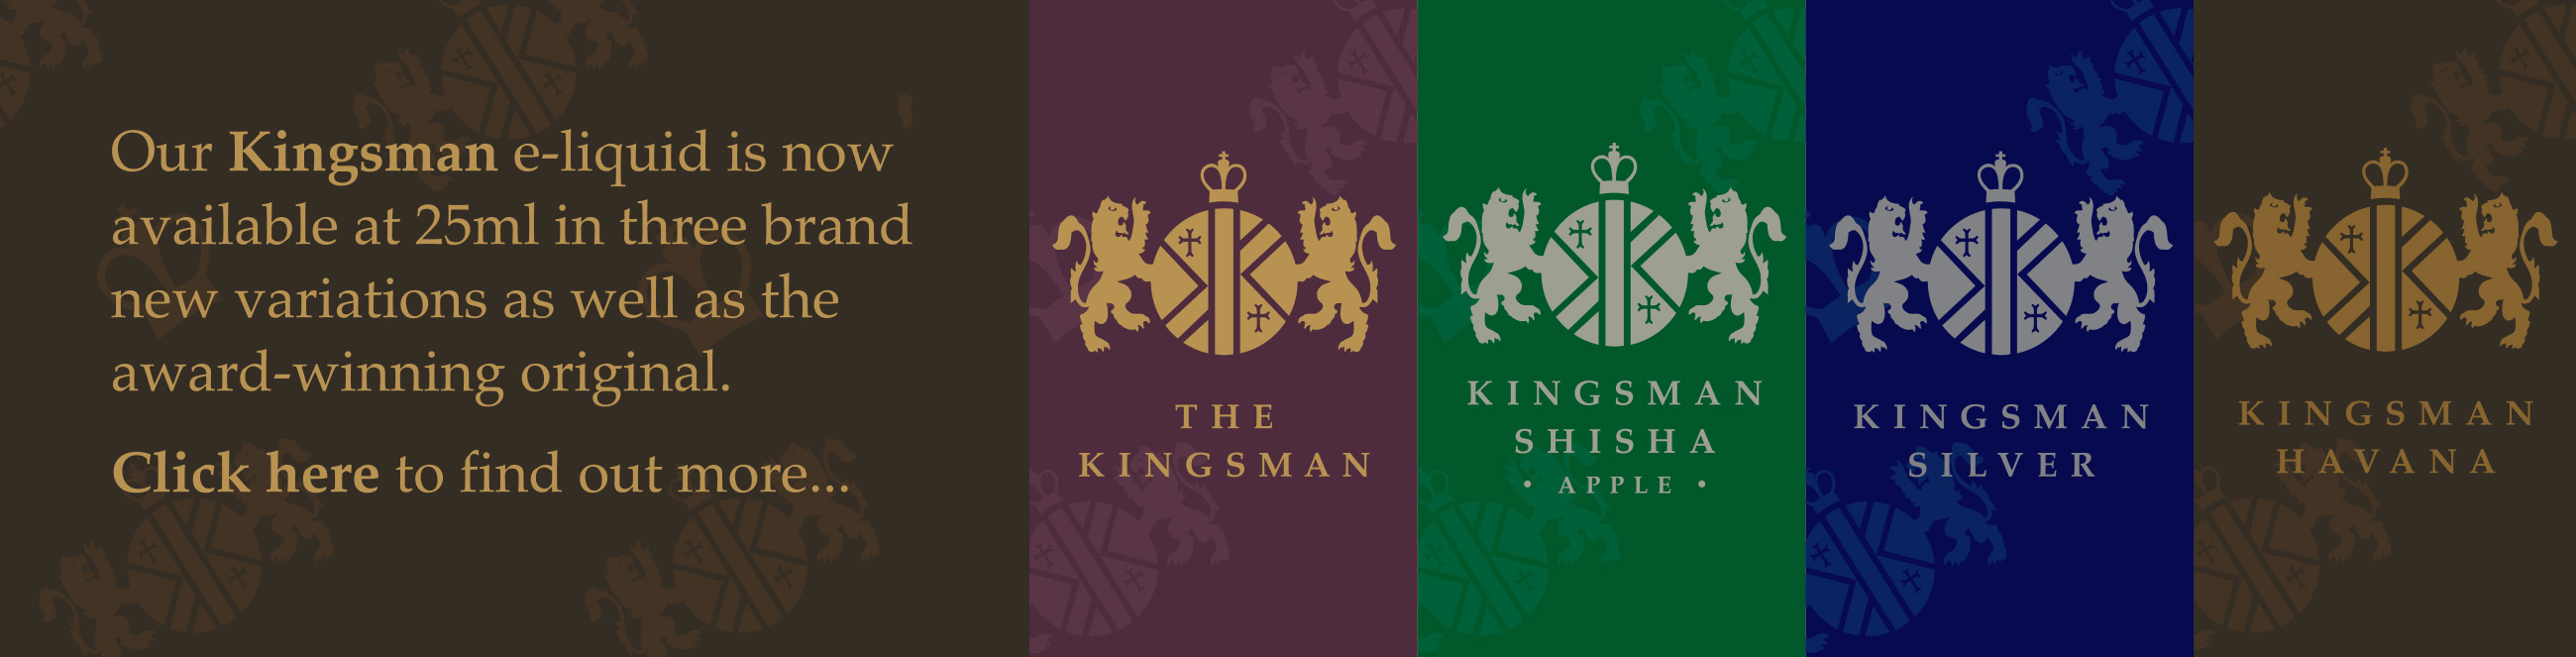 alfa-web-banner-new-kingsman.jpg